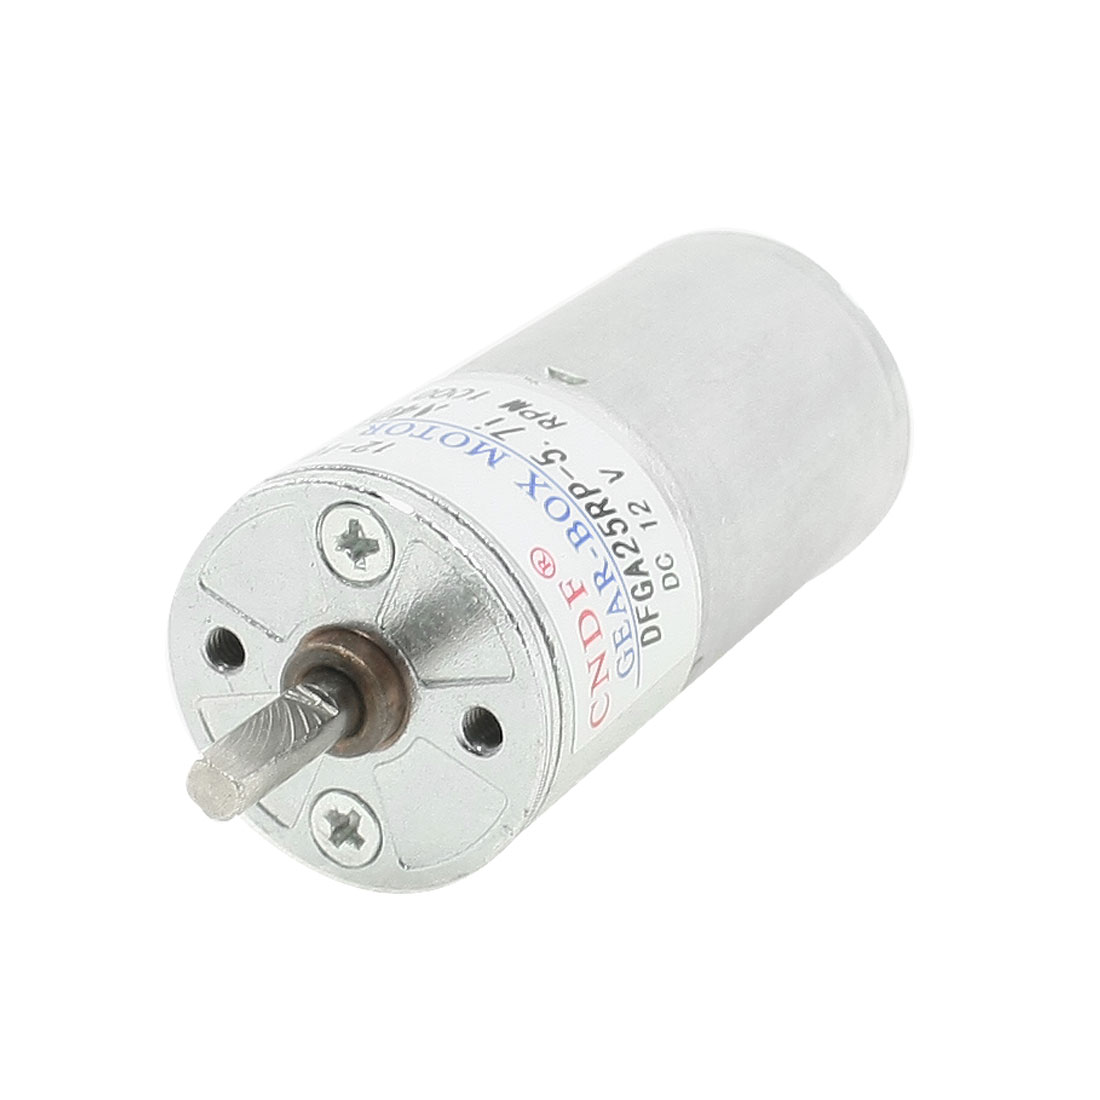 DC 12V 1000 RPM 4mm Dia Permanent Speed Reducing Geared Box Motor